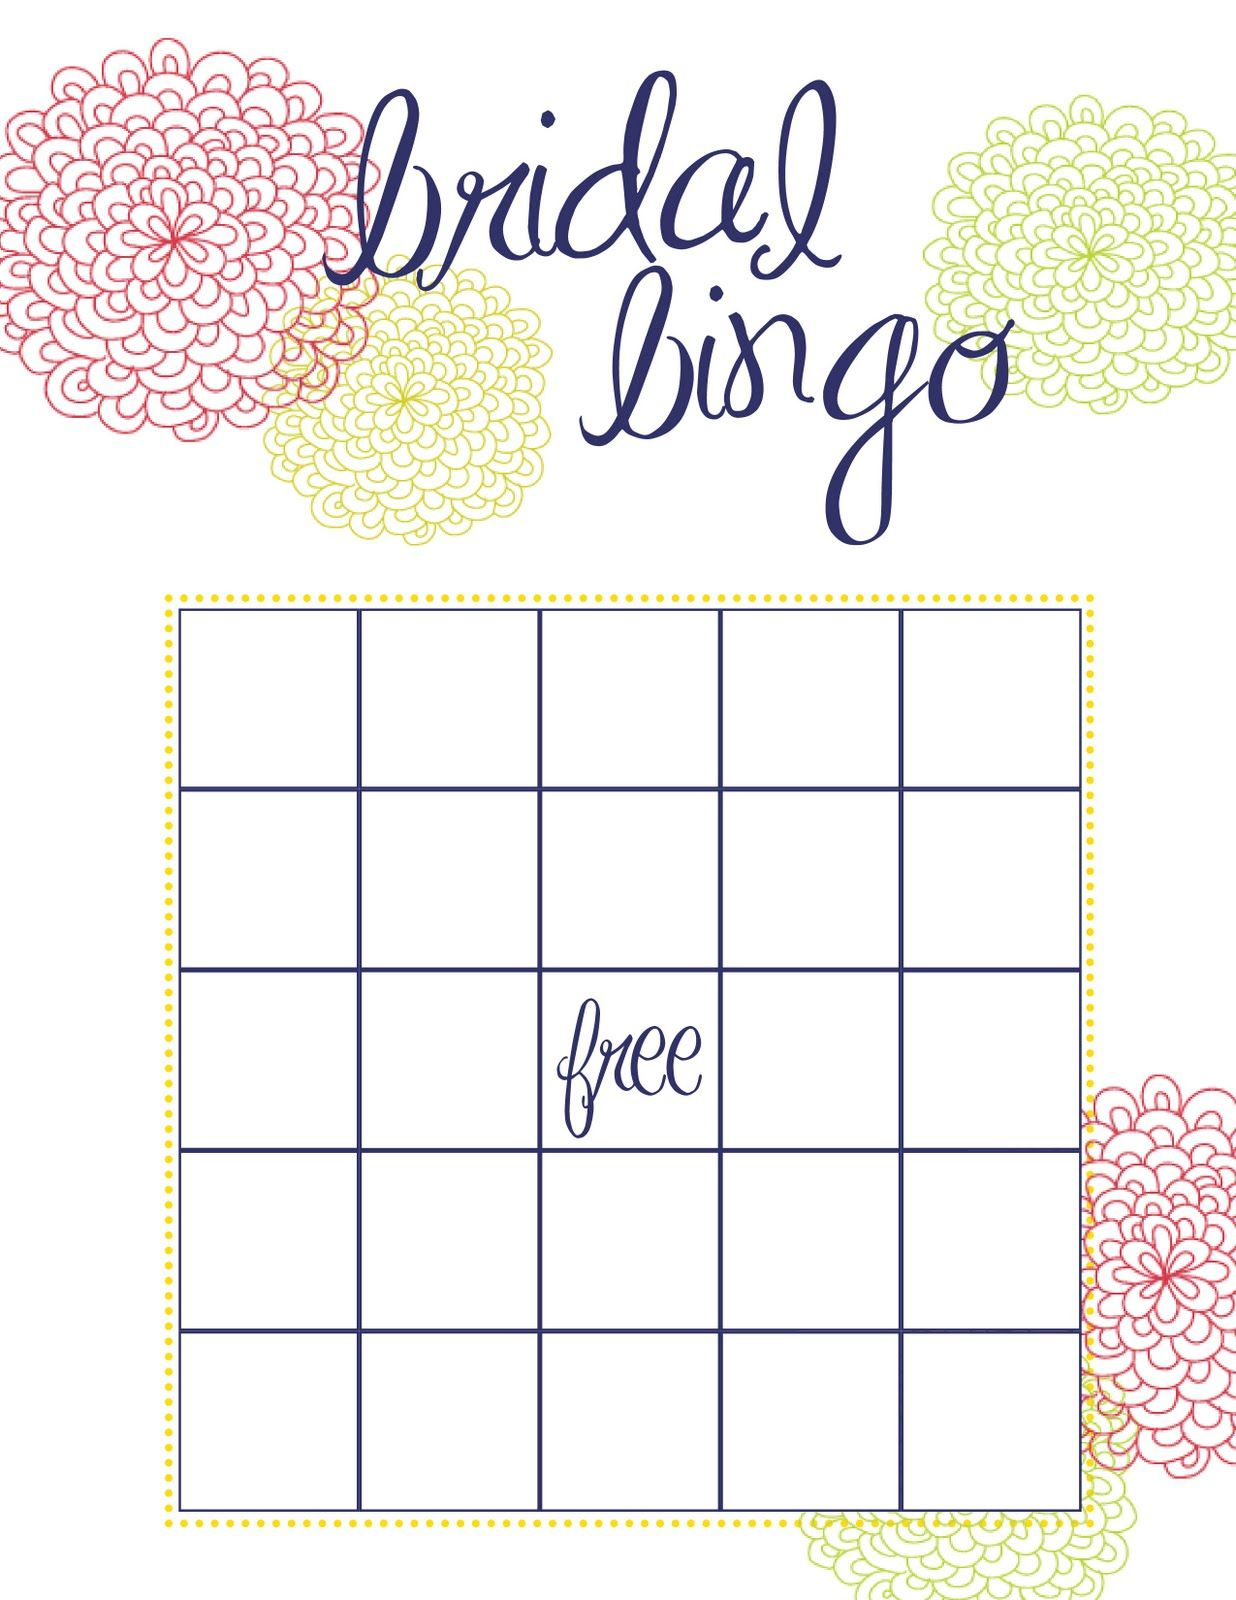 Busy Weekend In The Bow World | Bridal Bingo, Bridal